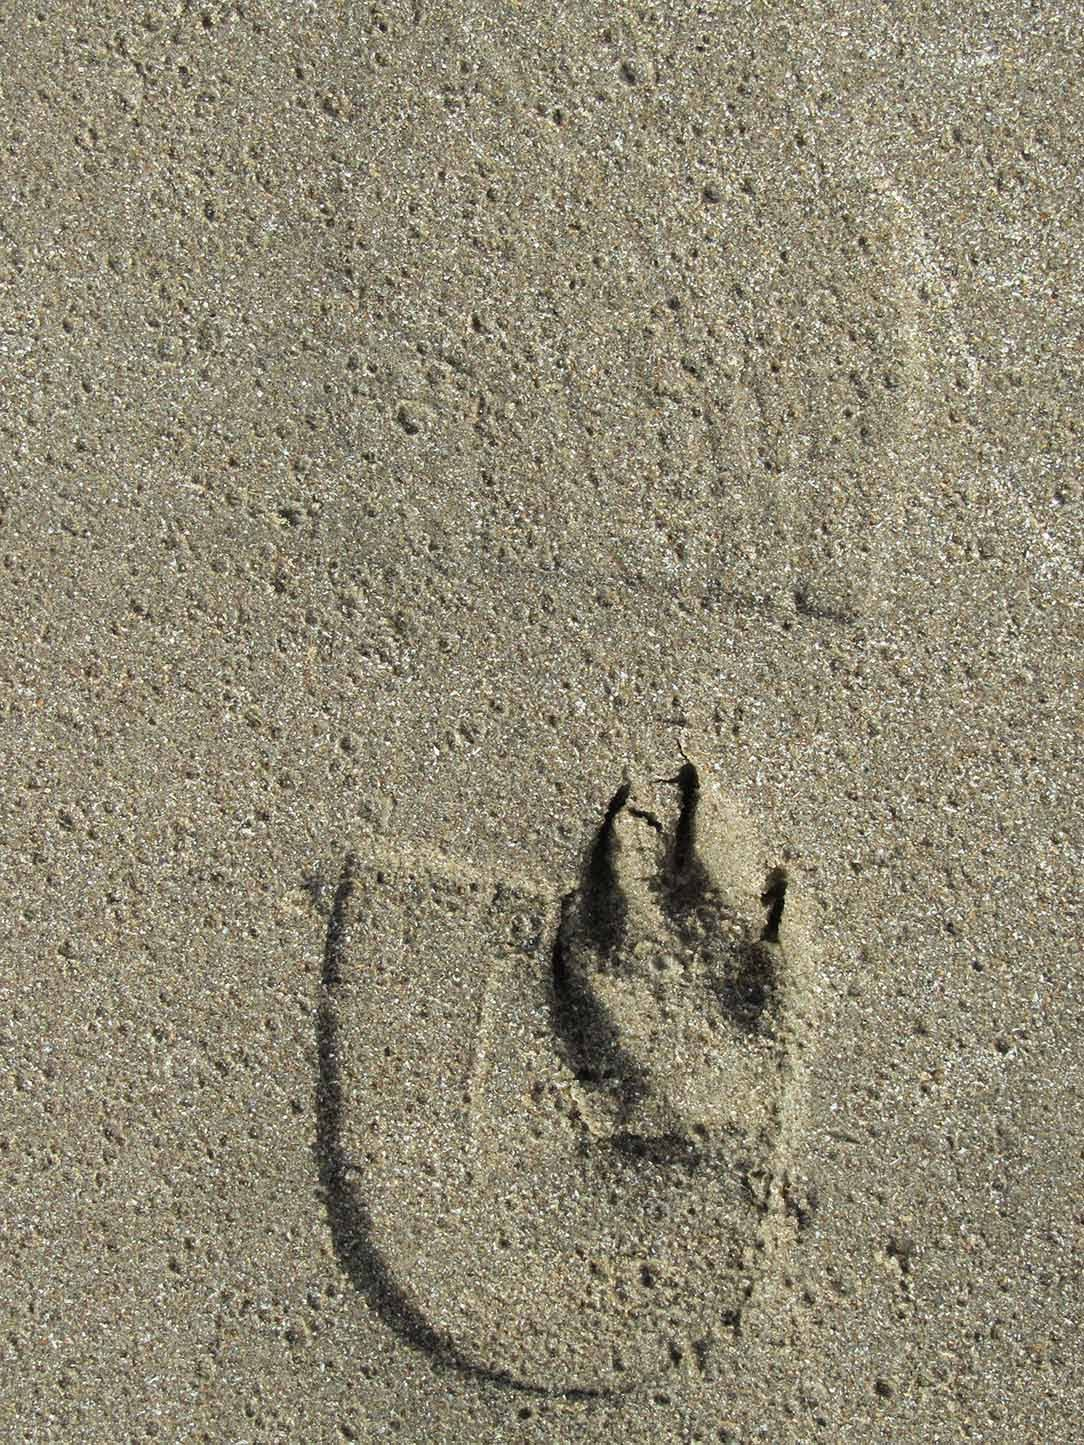 man's and dog's footsteps